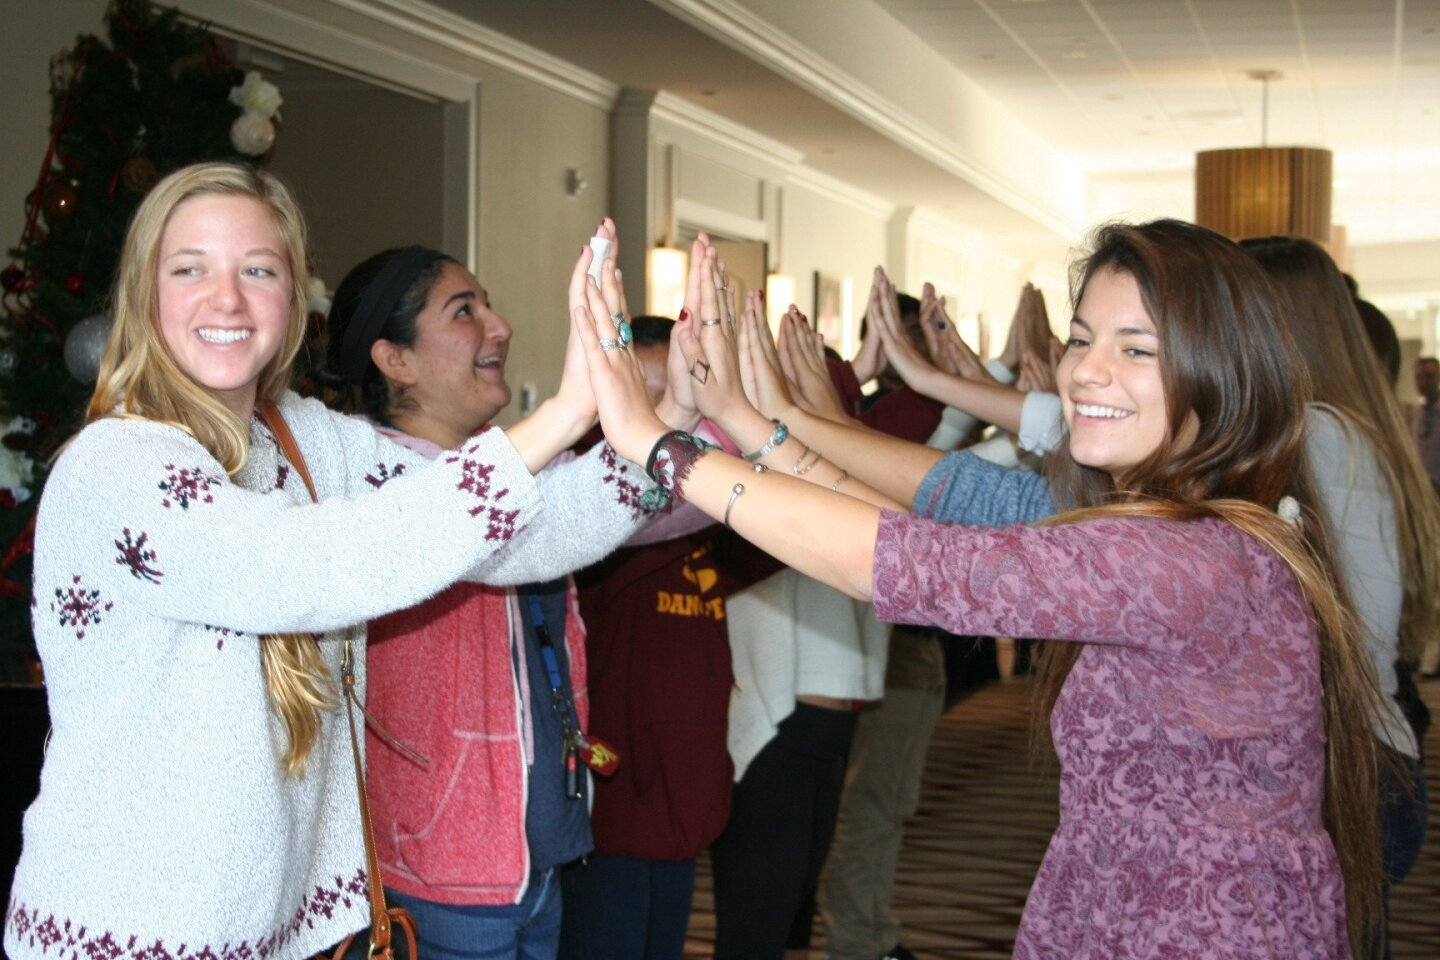 Students from Torrey Pines High School's Interact Club welcomed the children